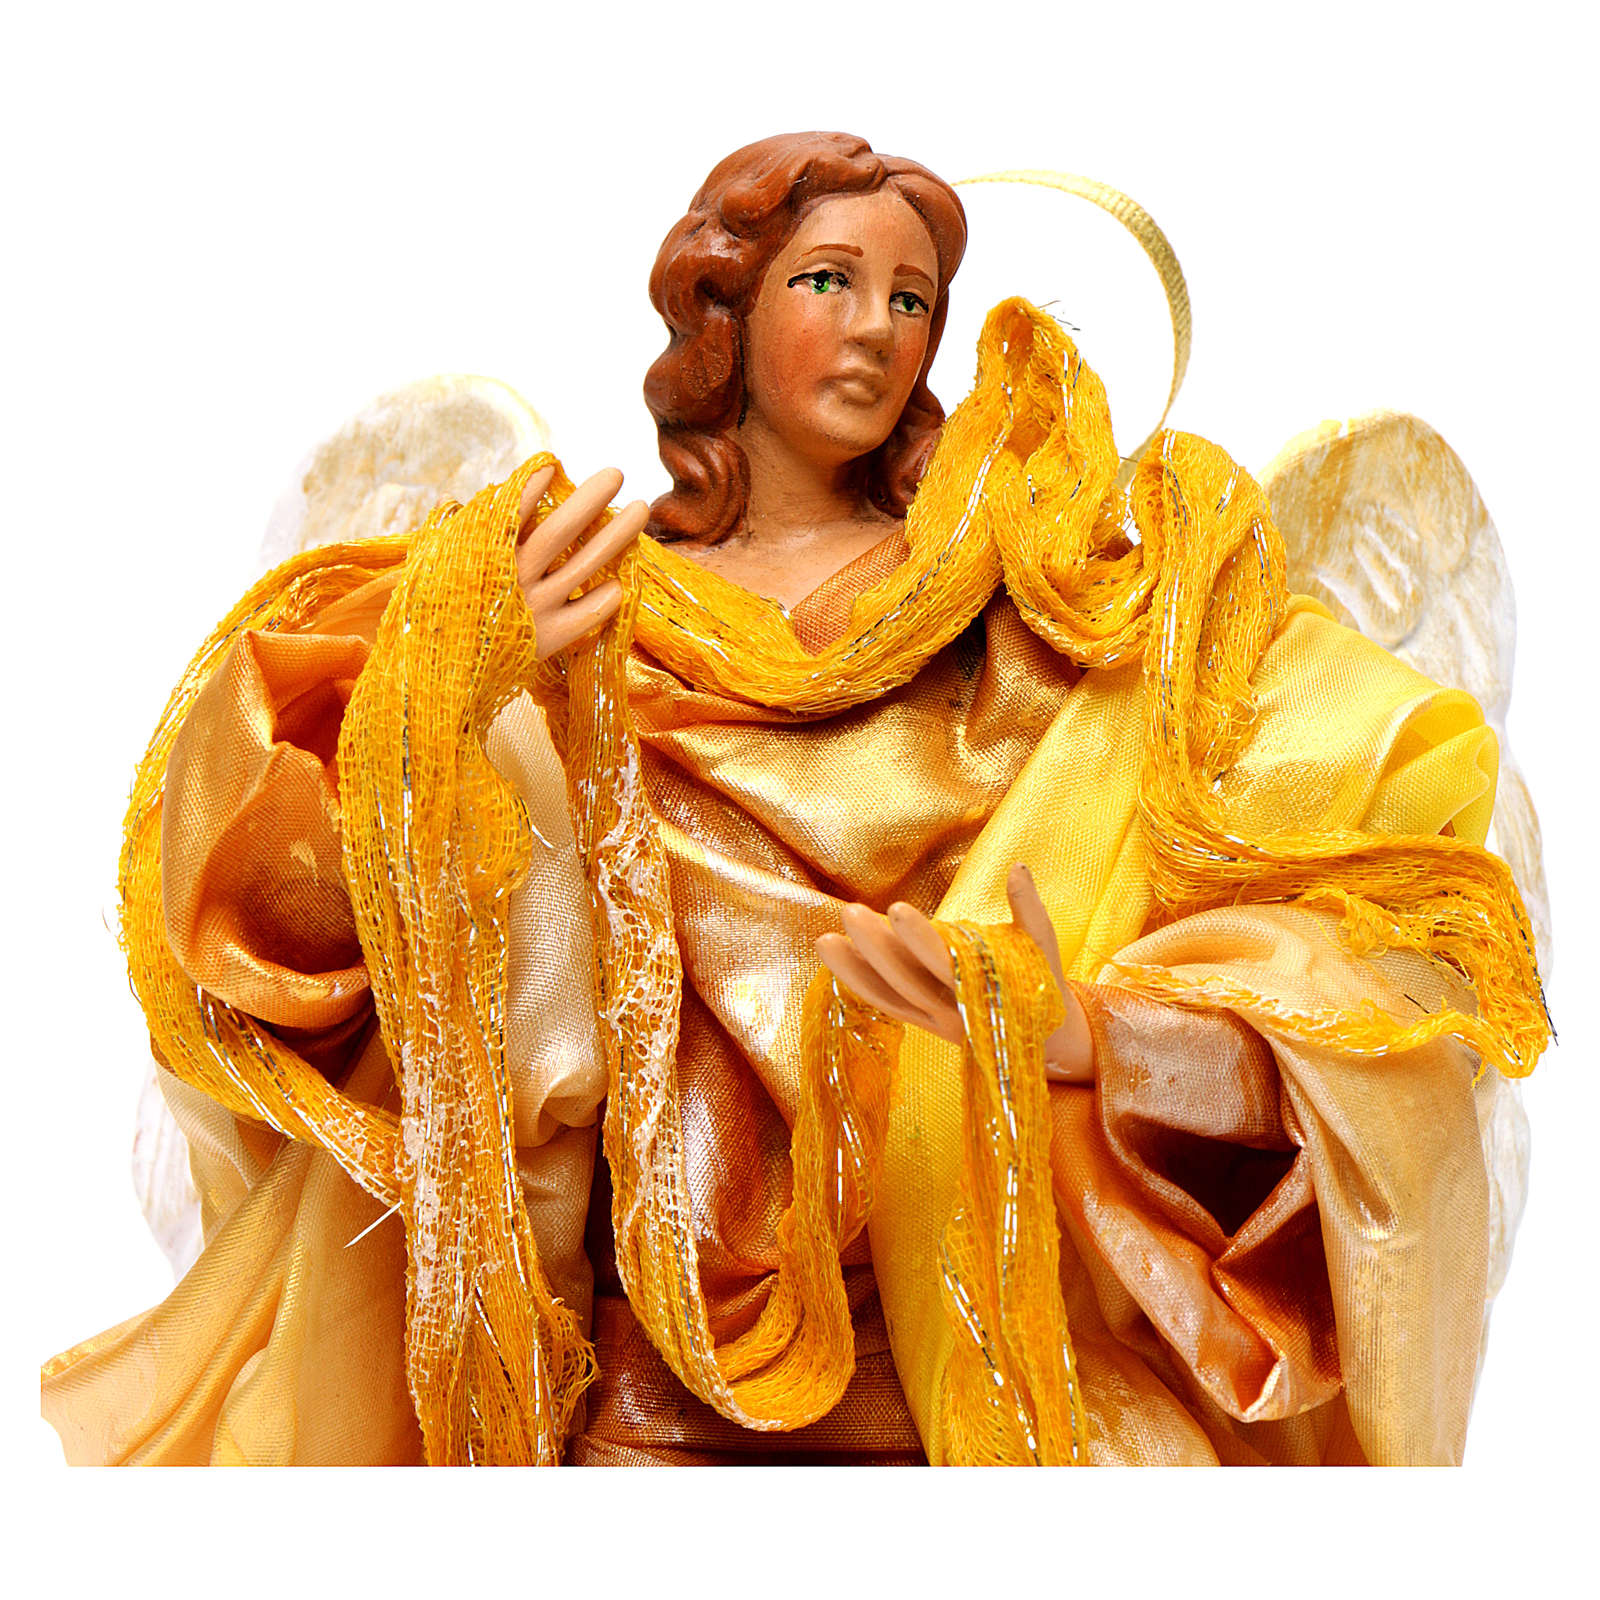 Gold angel with curved wings, figurine for Neapolitan Nativity, 18-22cm 4